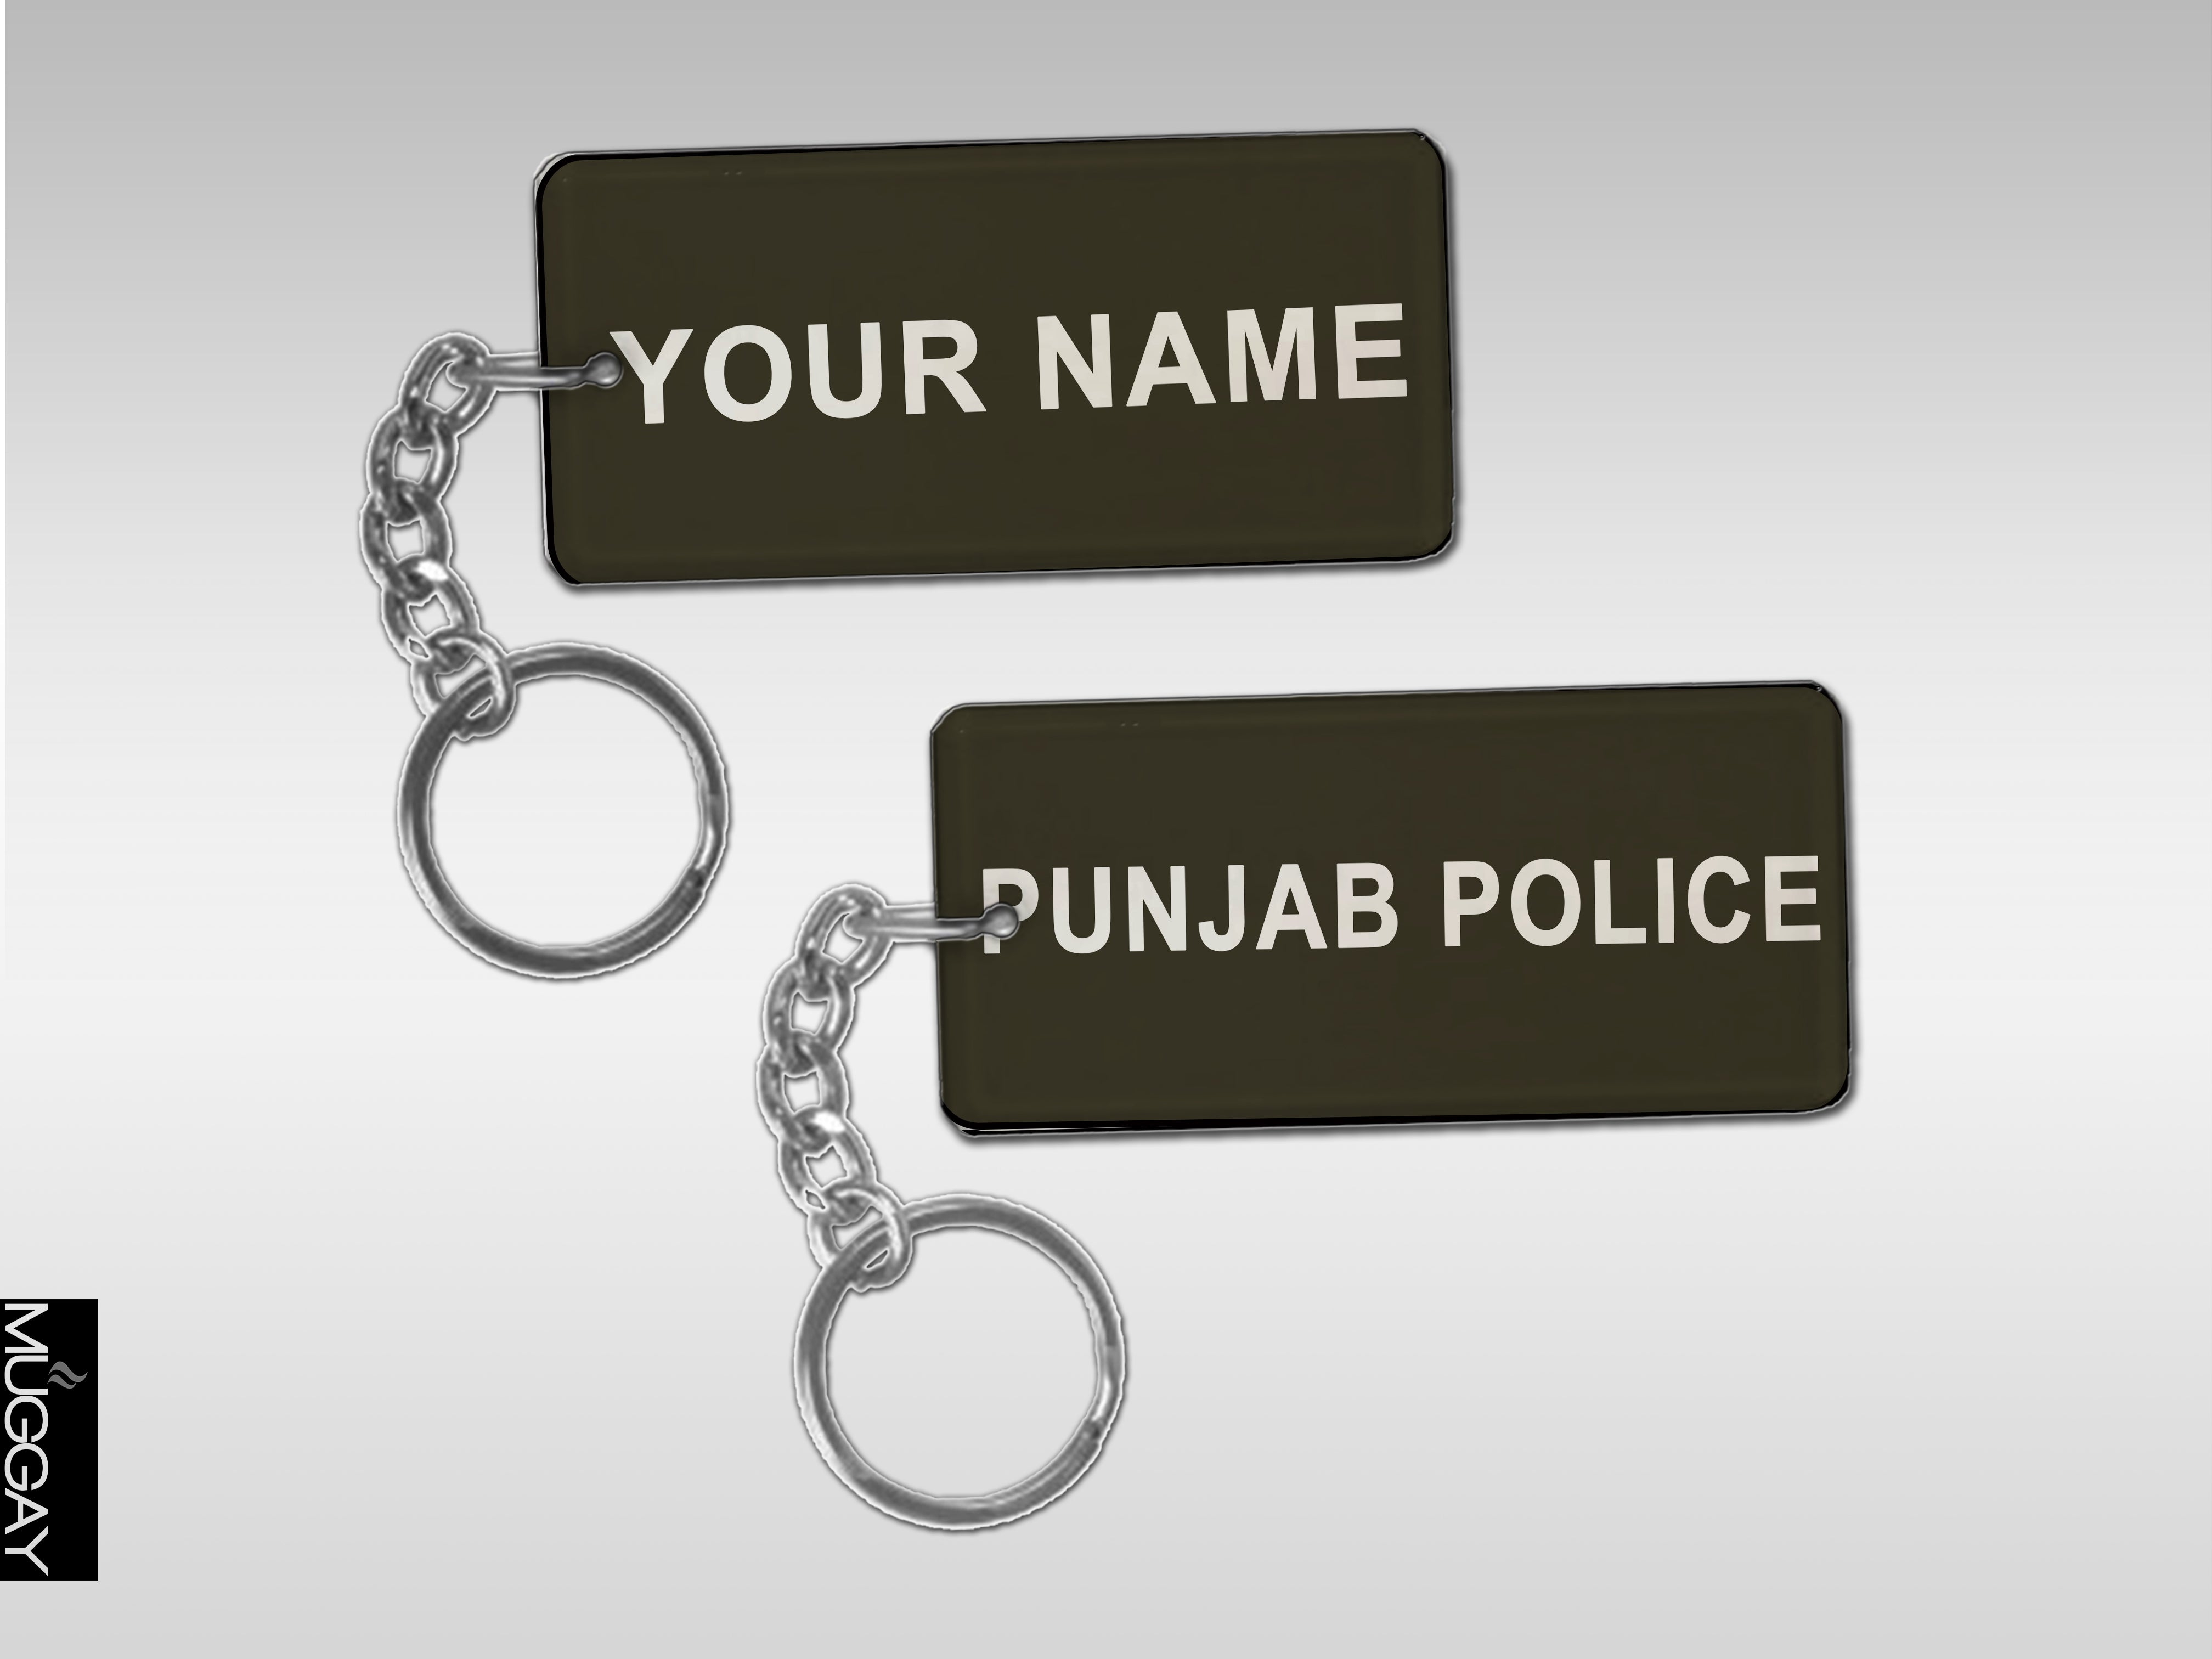 Army Key-Chains with Your Name